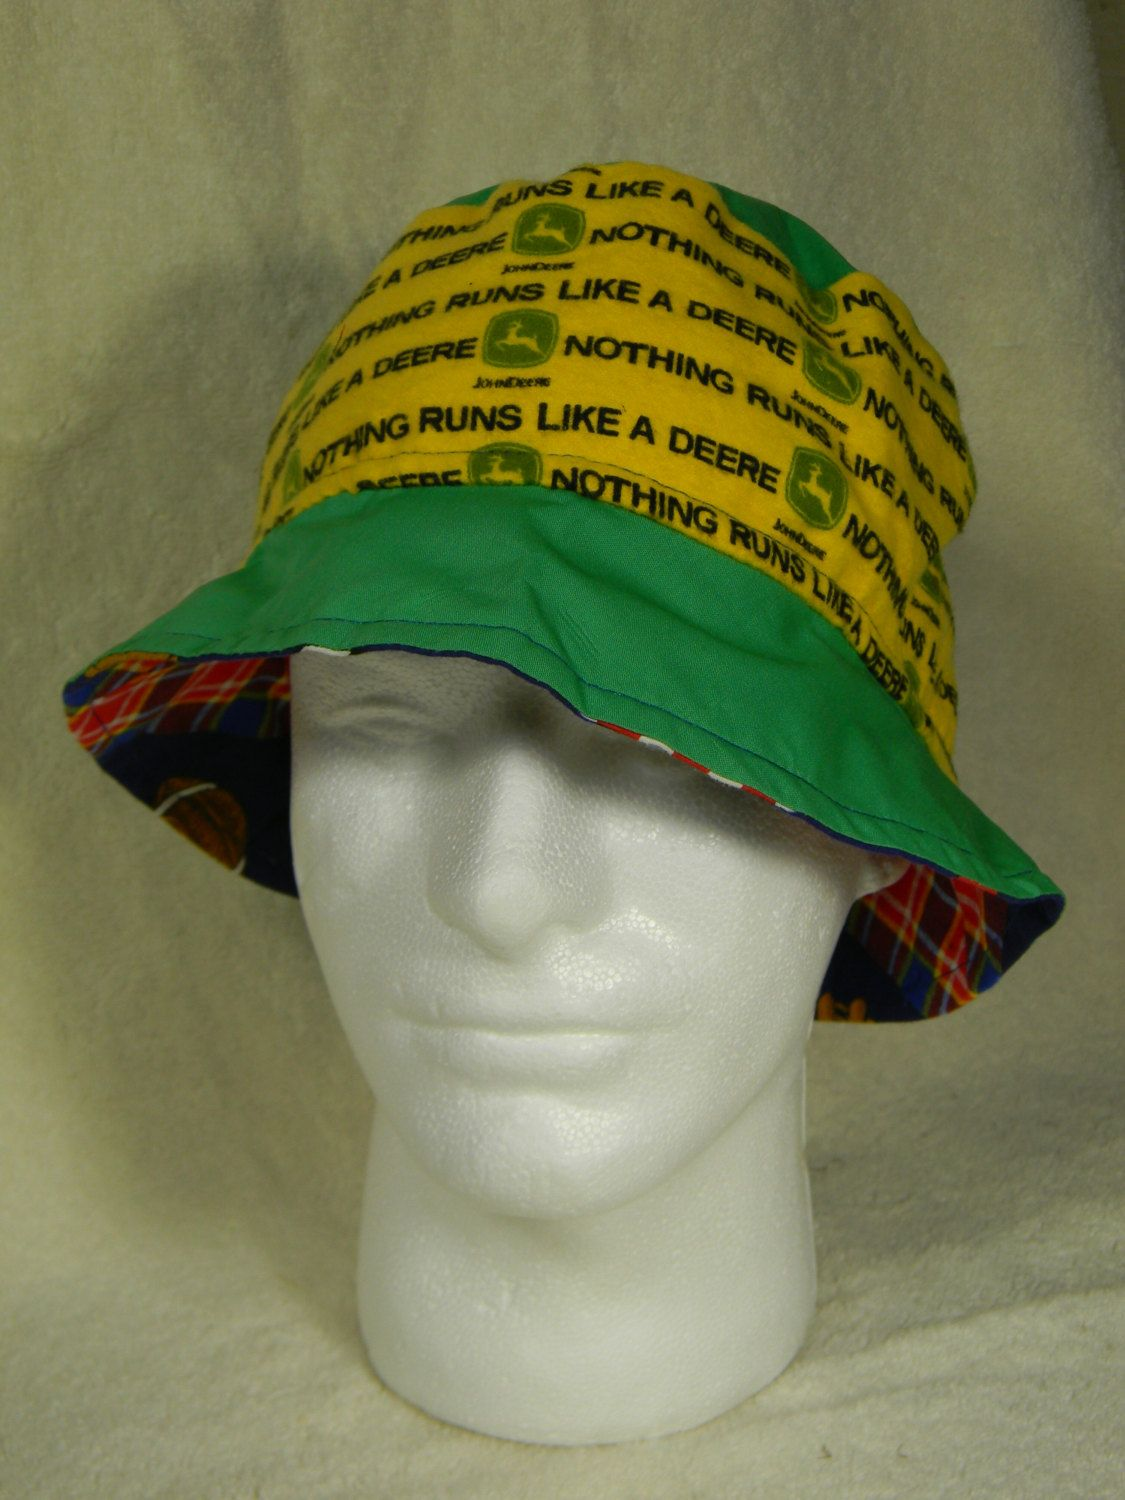 81dcc2e4b46 Reversible Bucket Hat John Deere Nothing Runs Like A Deere Sports Football  Baseball Soccer Theme in Green Yellow Red Blue One Size Fits Most by ...